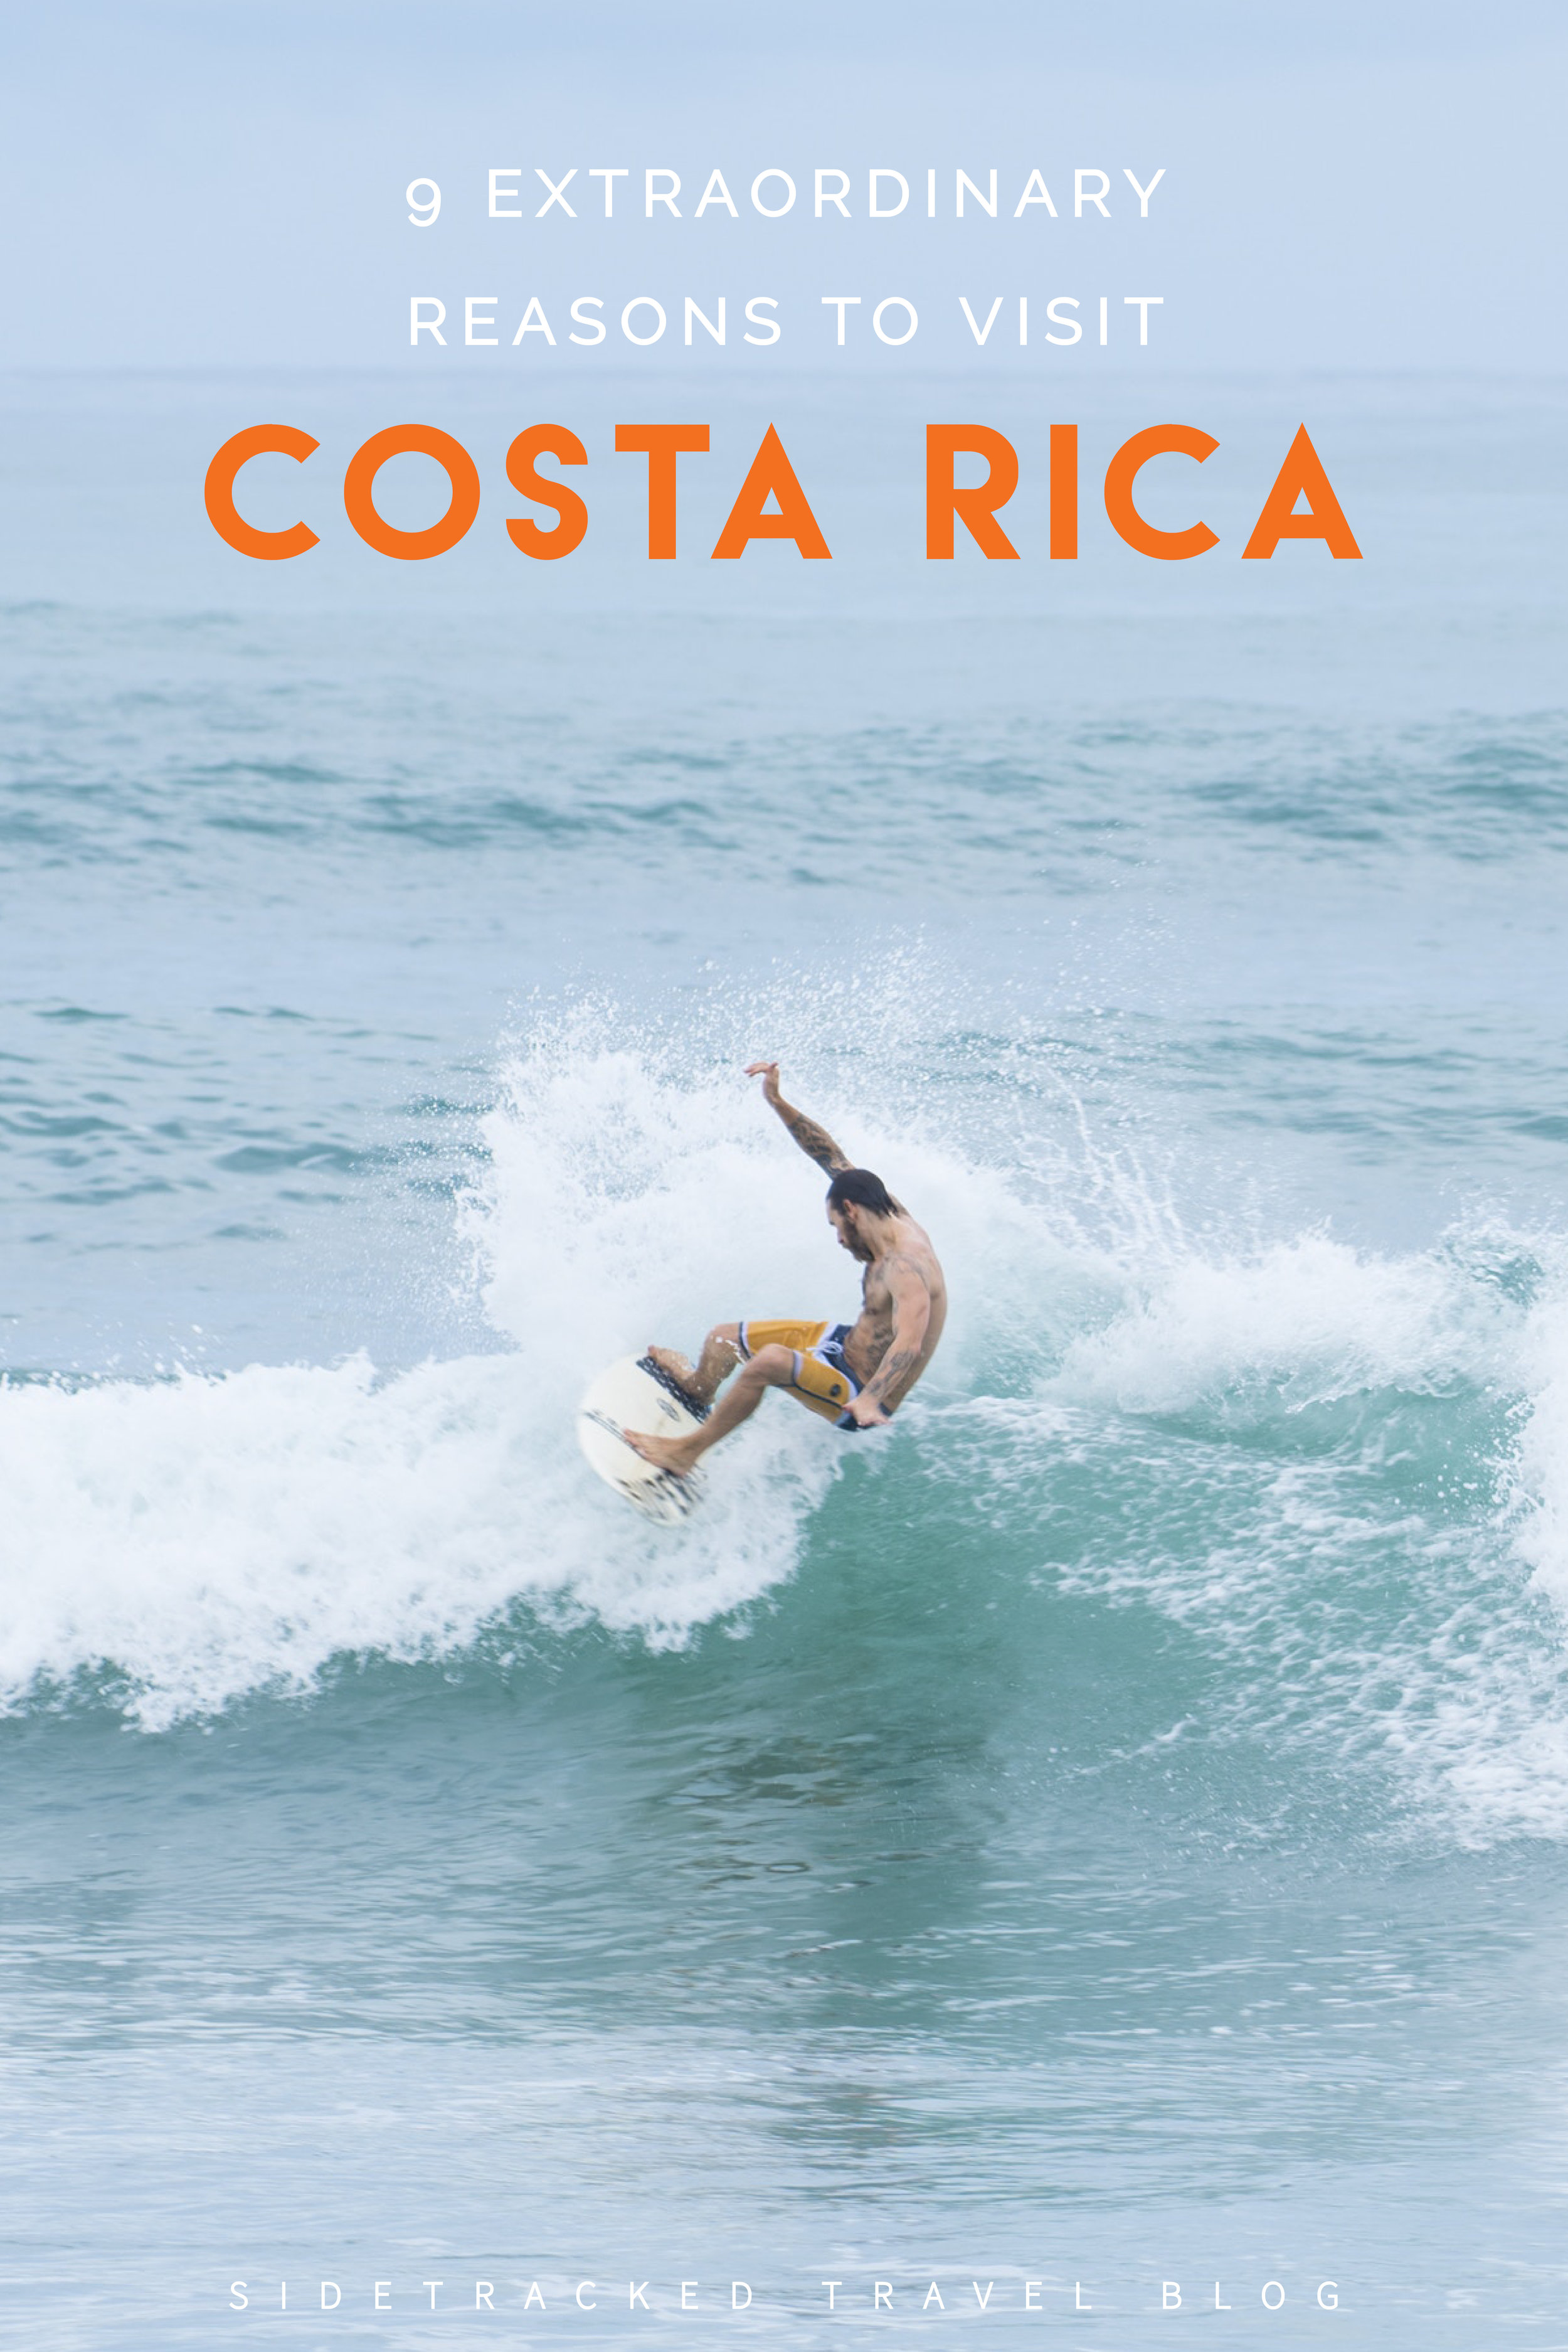 Looking for Costa Rica inspiration? You've come to the right place. To help you plan the most amazing trip, here are nine extraordinary reasons to visit!